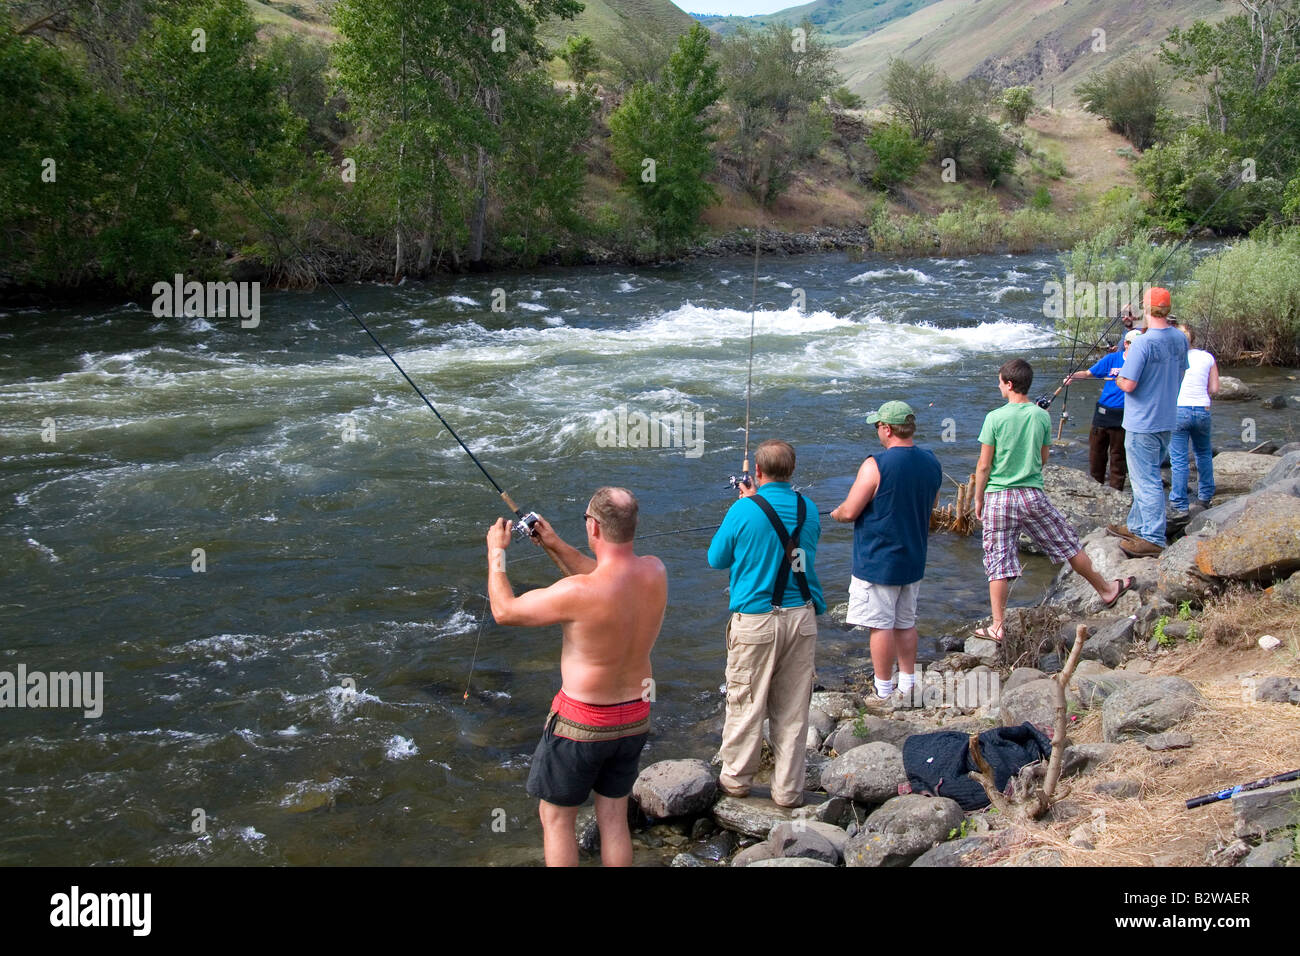 Chinook salmon fishing along the banks of the little for Salmon fishing in idaho